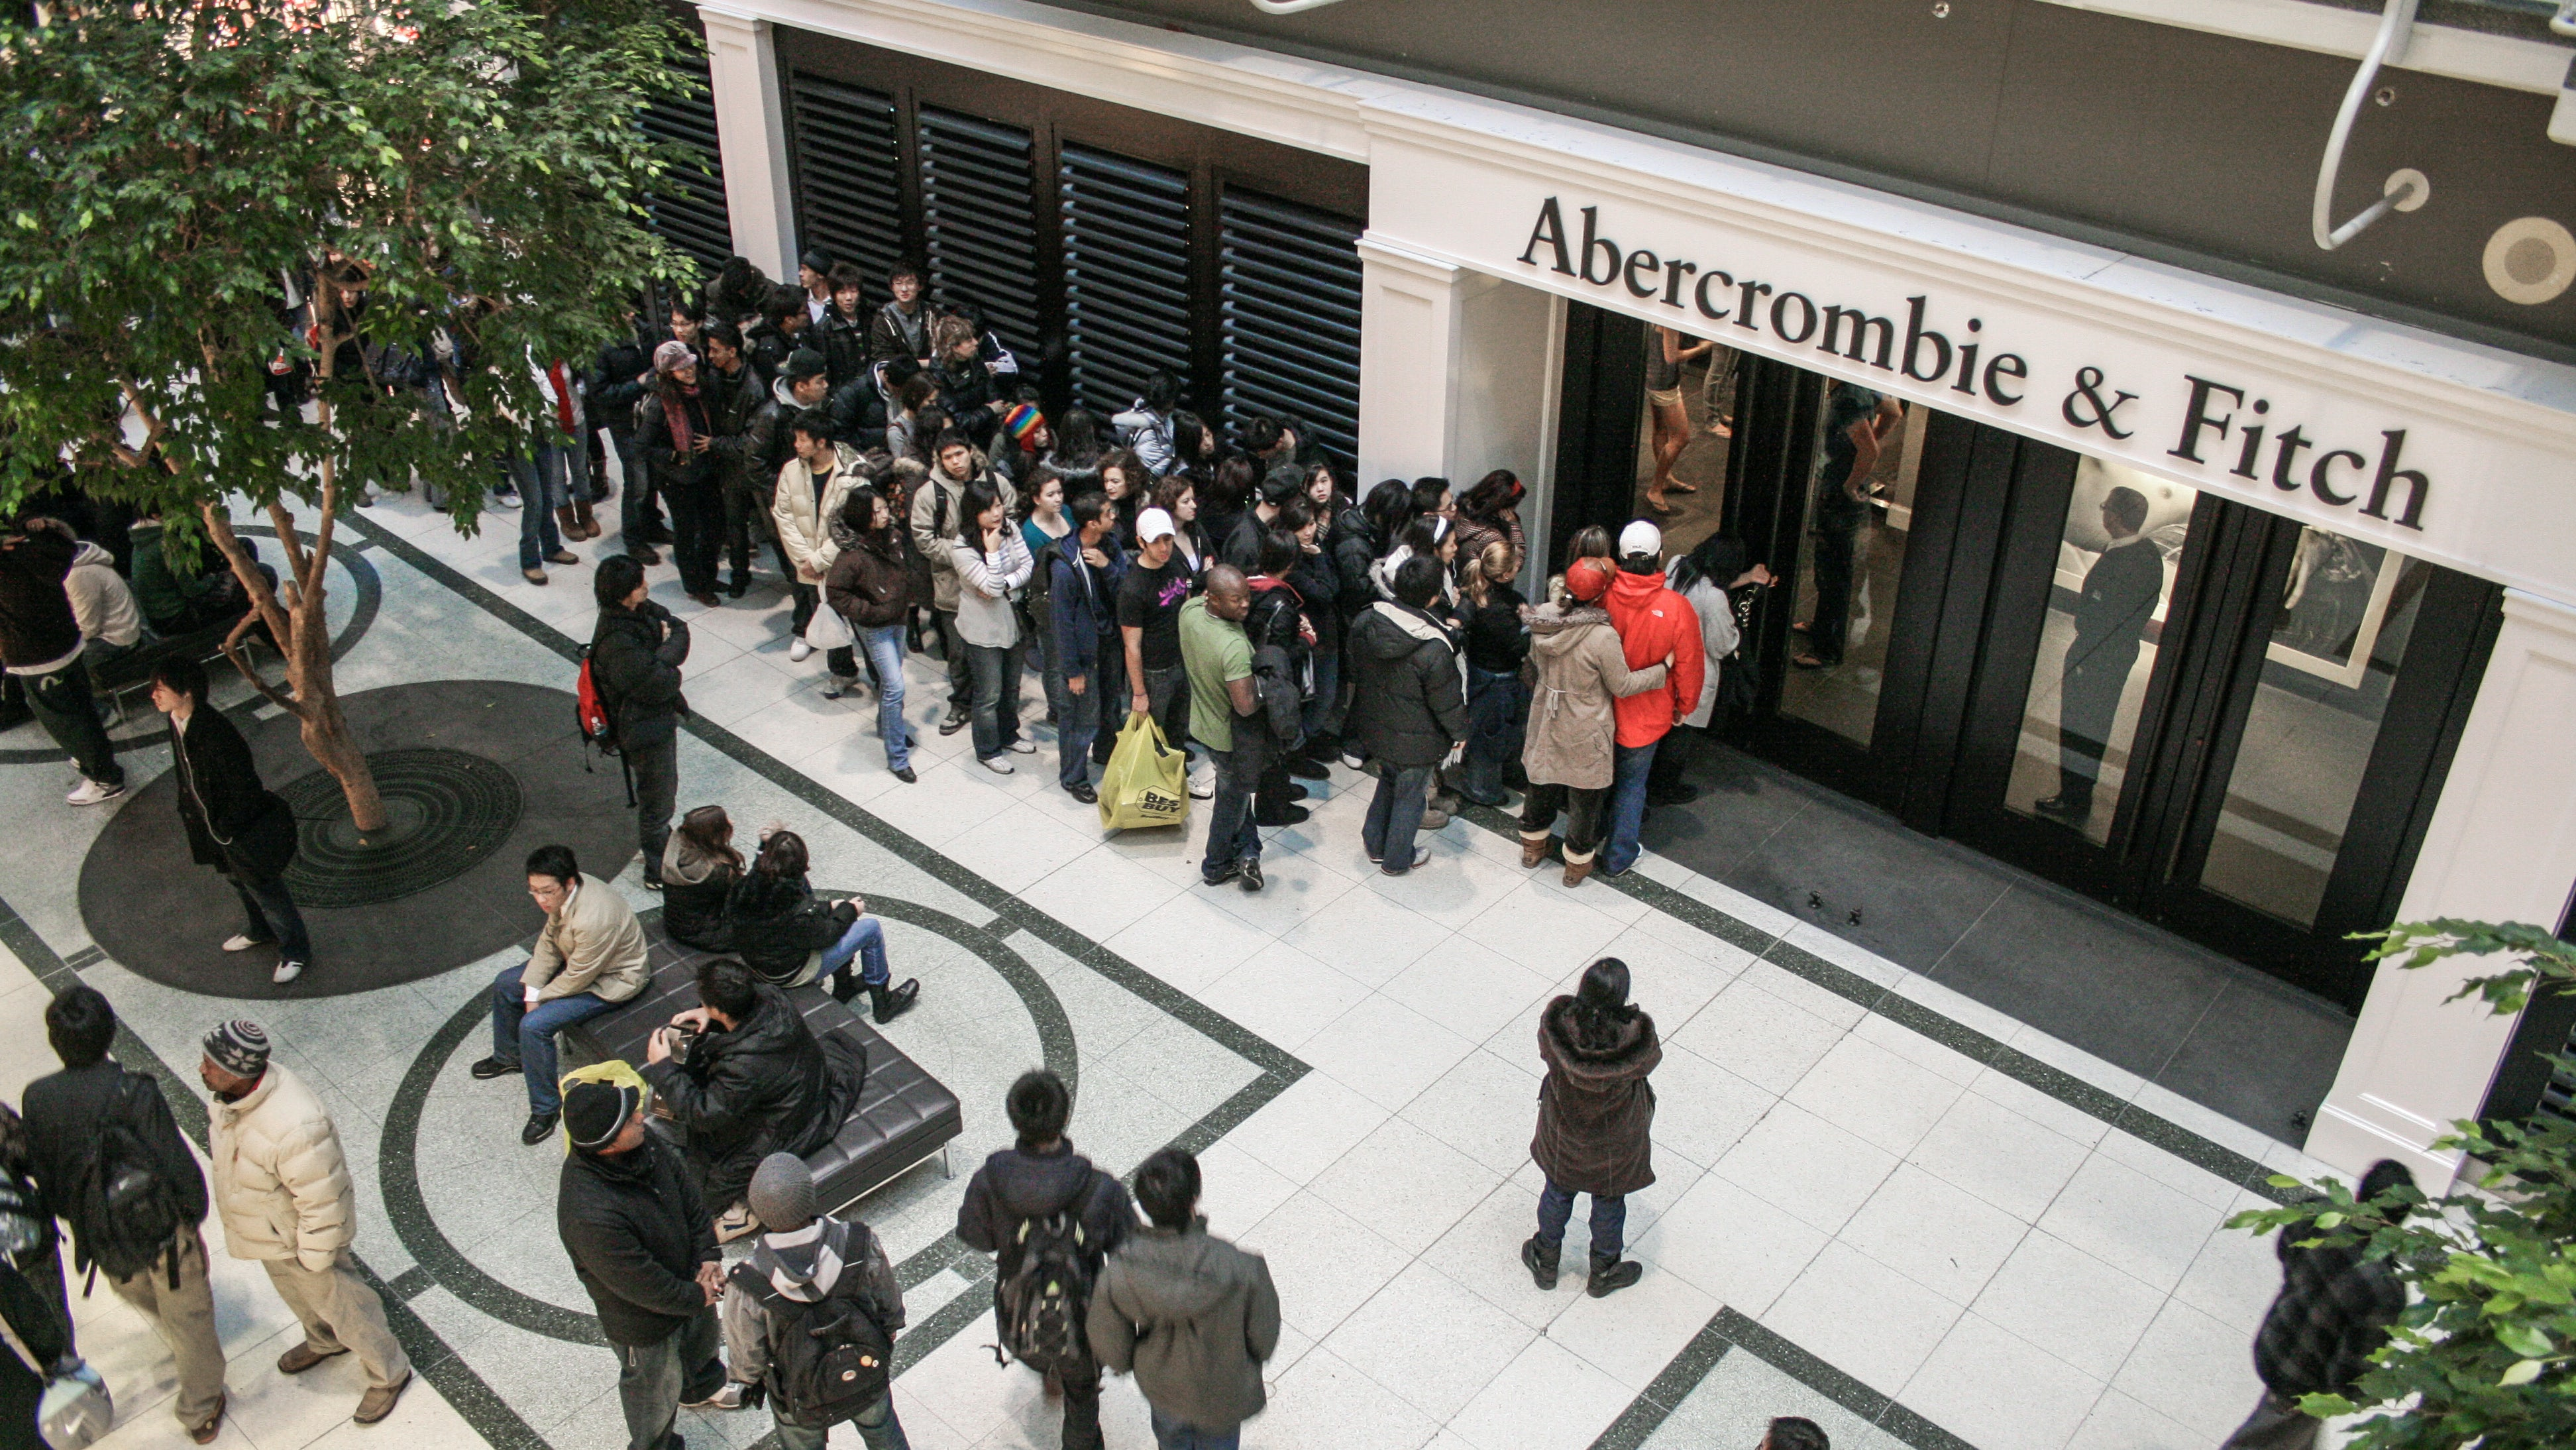 An Abercrombie & Fitch store in 2007 | Source: Shutterstock